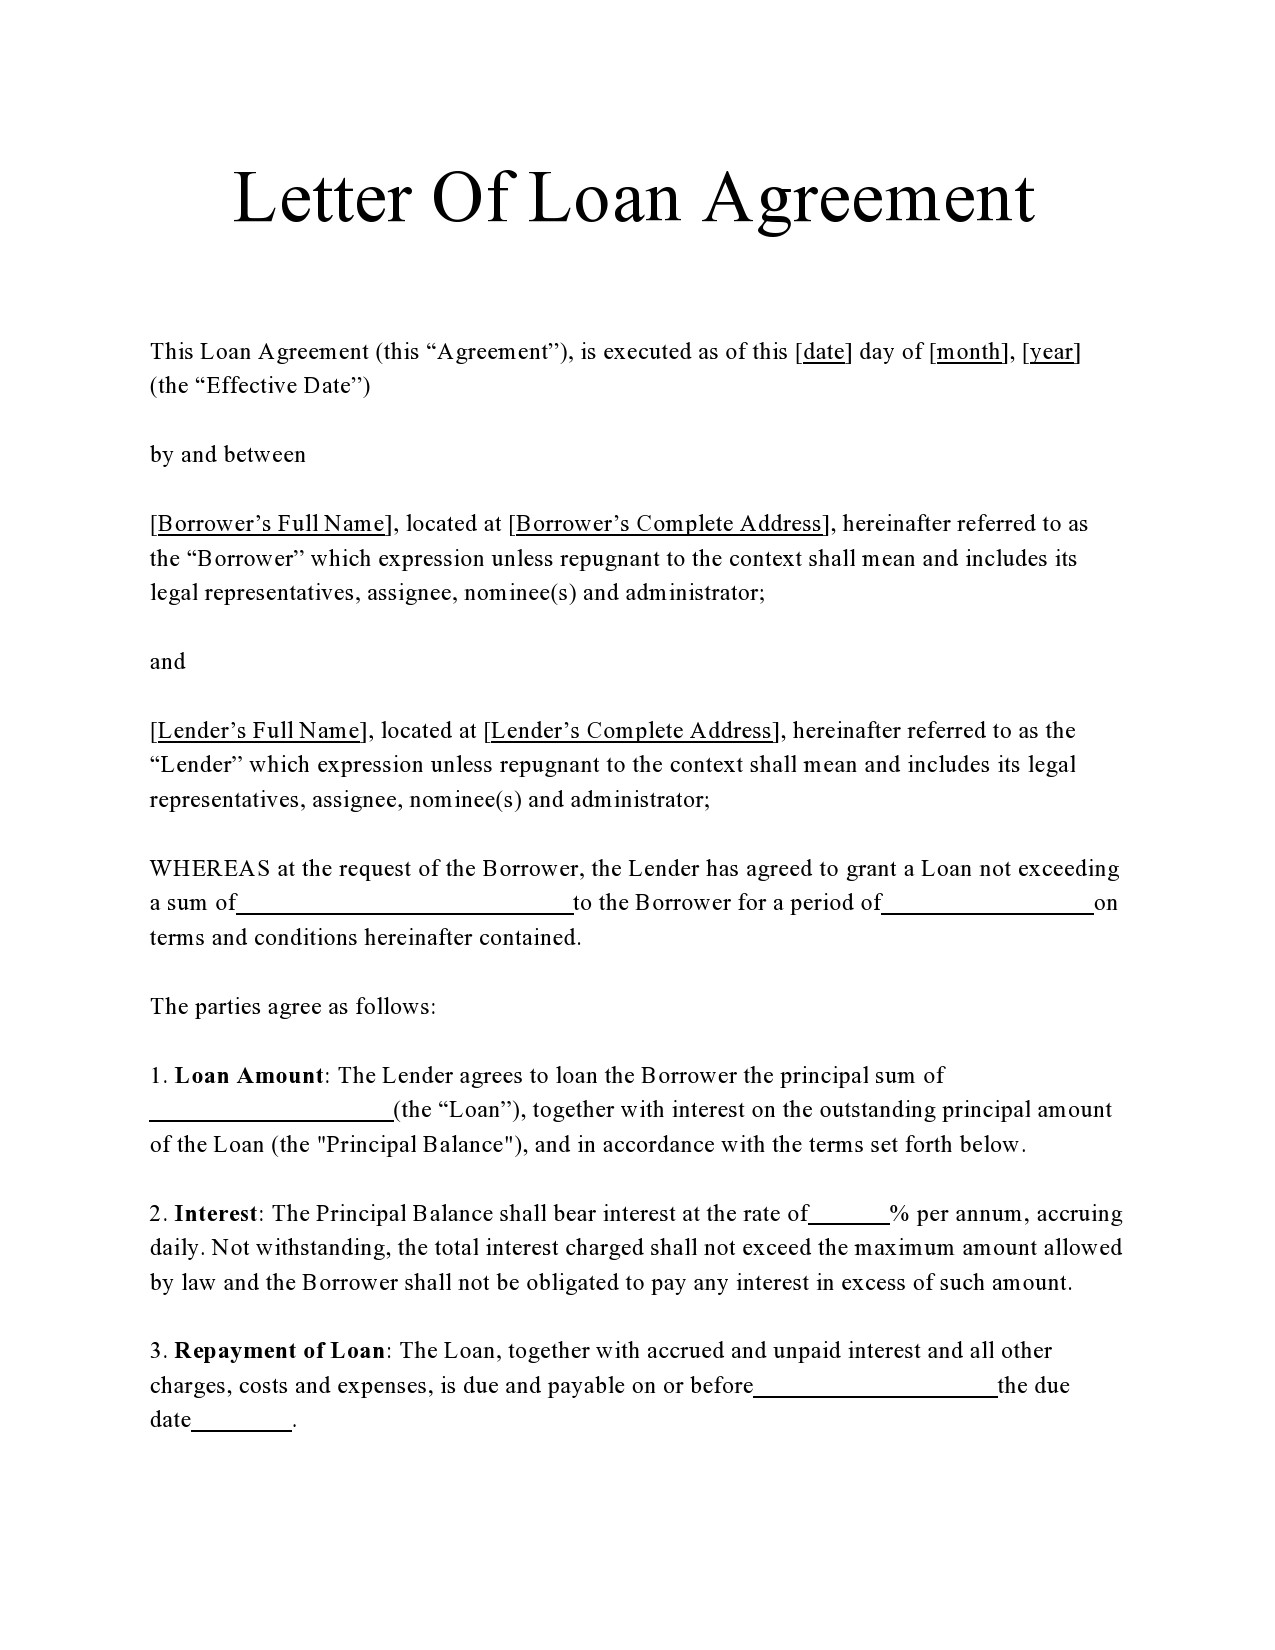 Free letter of agreement 30